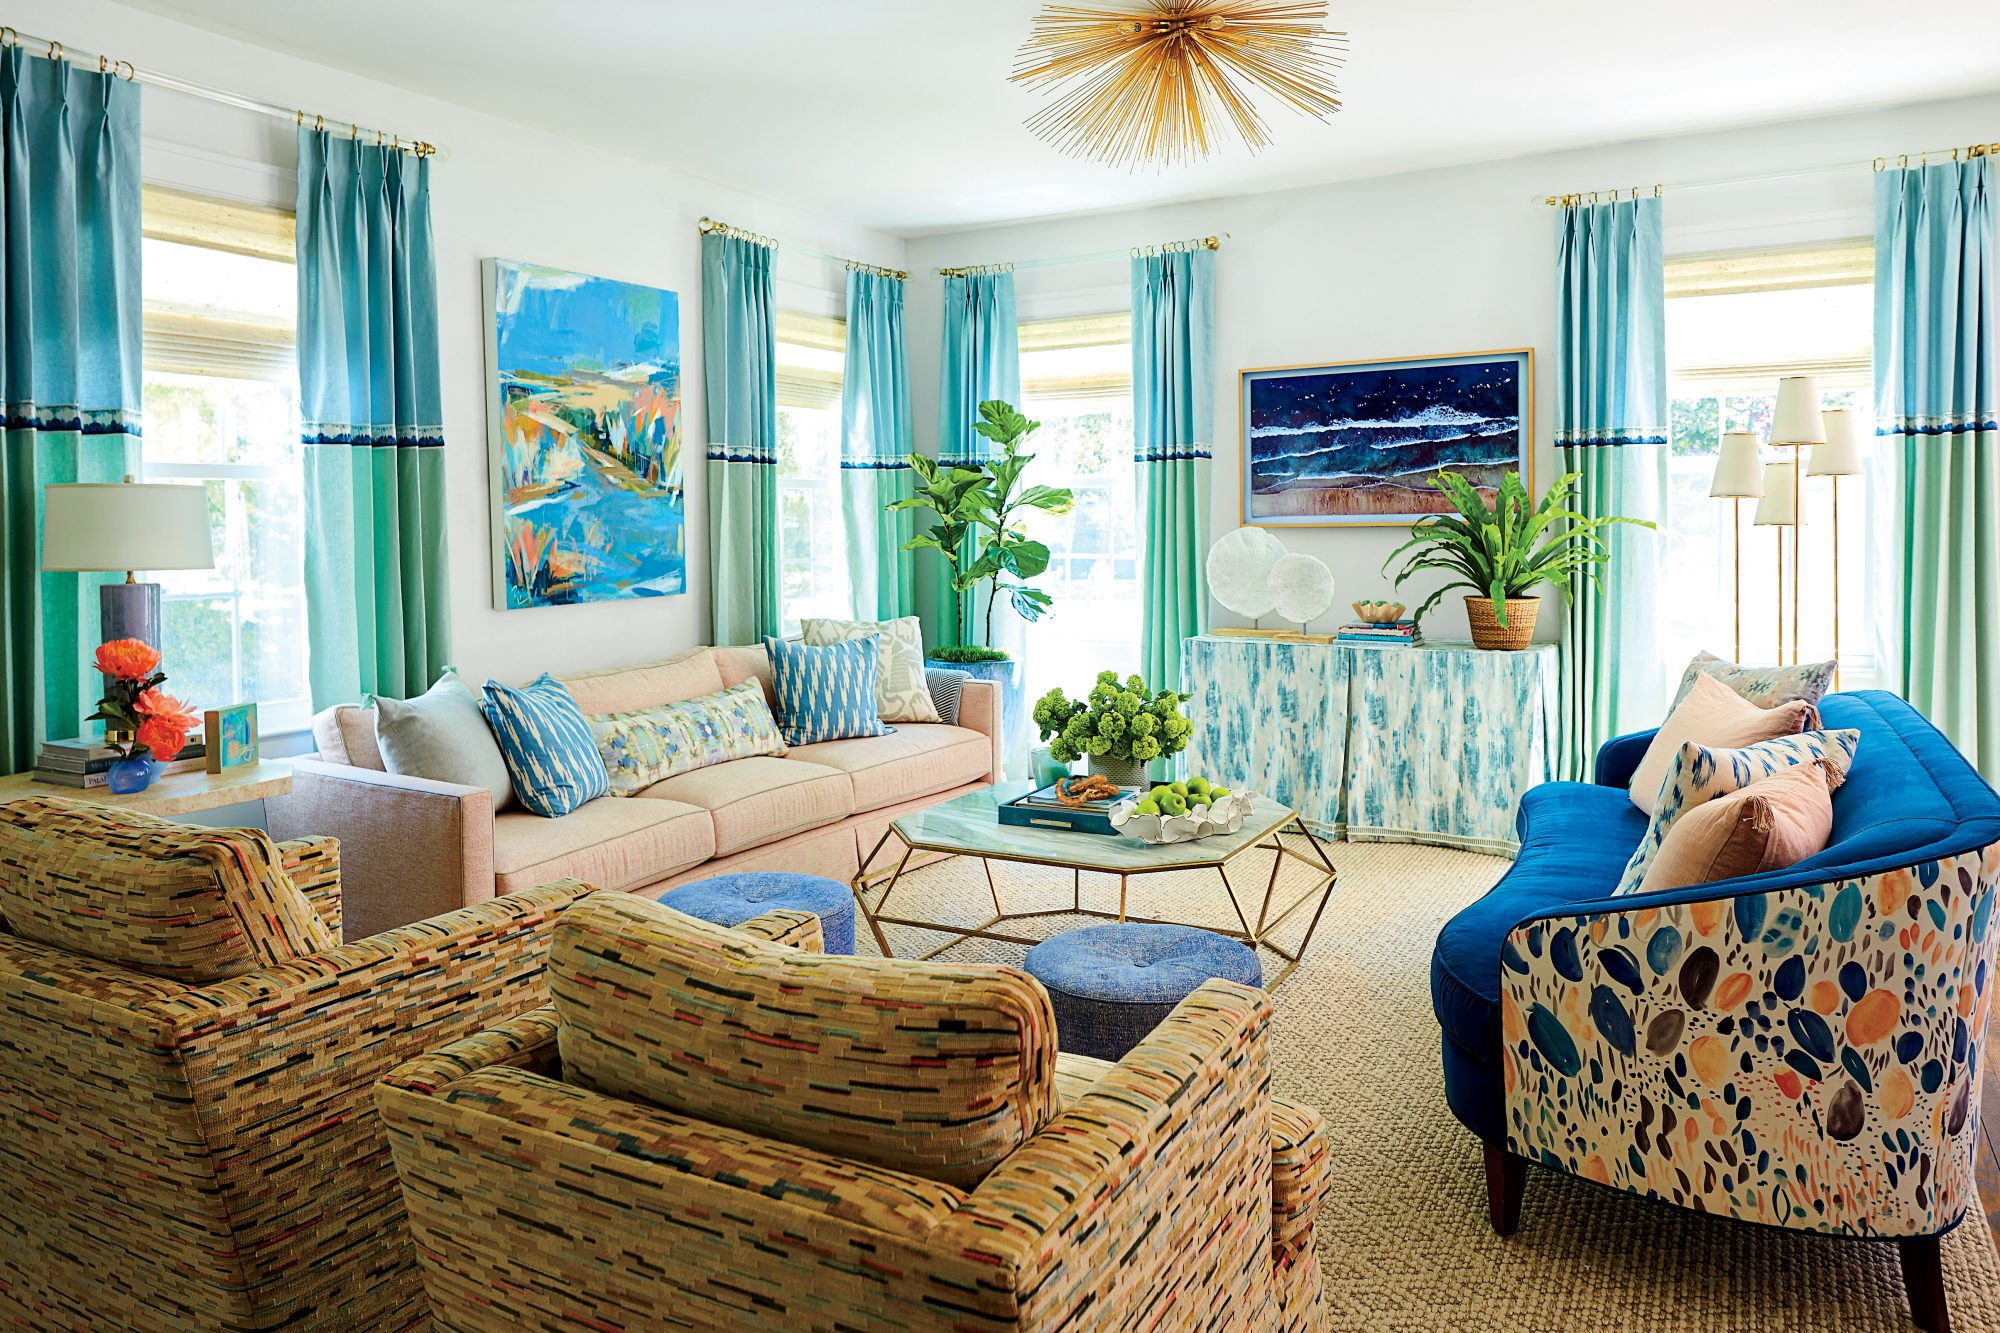 Lindsey Cheek Wilmington, NC Home Living Room with Pink, Teal, and Blue Details